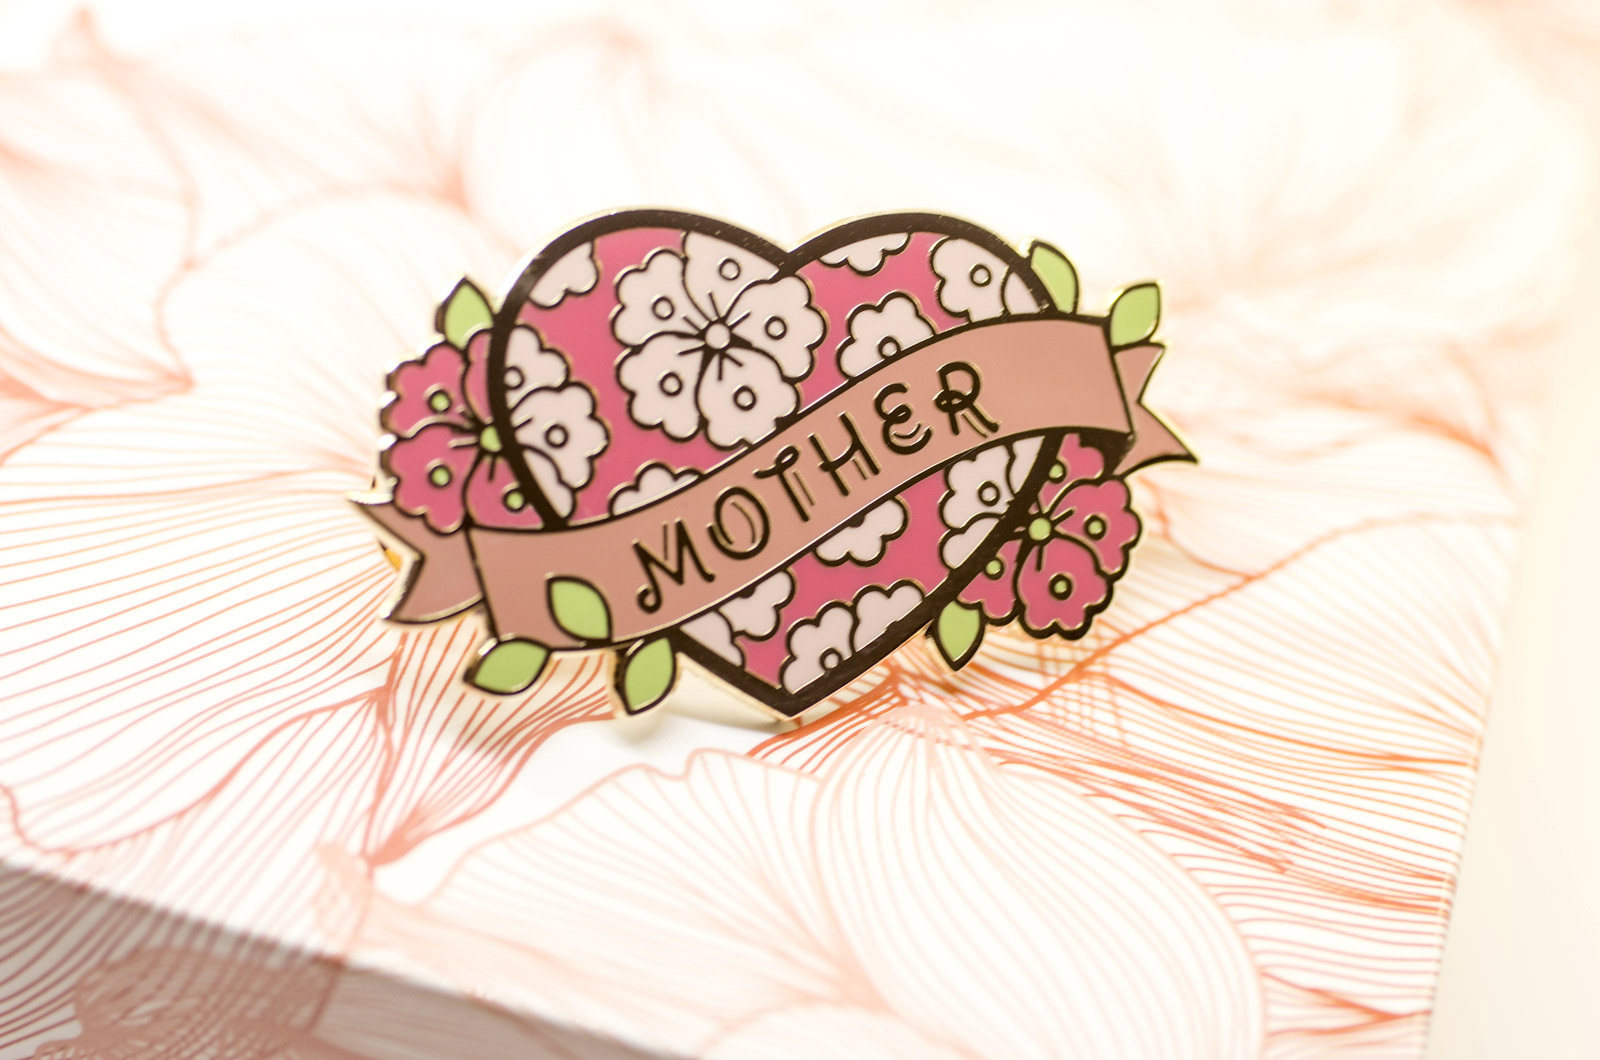 mom tattoo pin moms enamel accessory swag vintage mother's day art flower banner heart leaf floral gold lineart